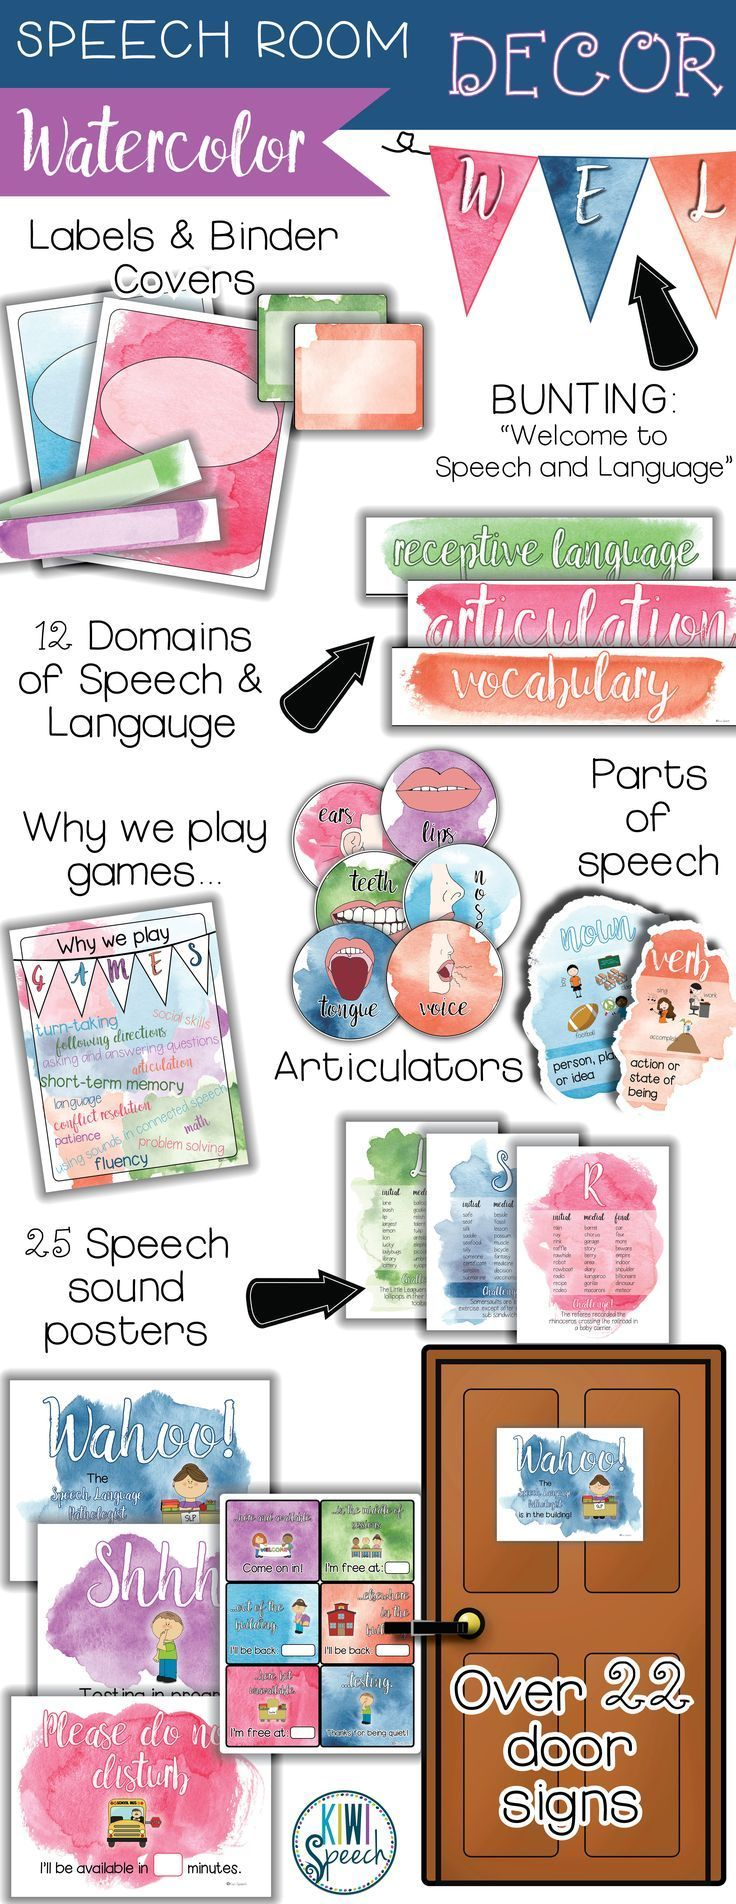 Speech Room Decor Kit {Watercolor} images